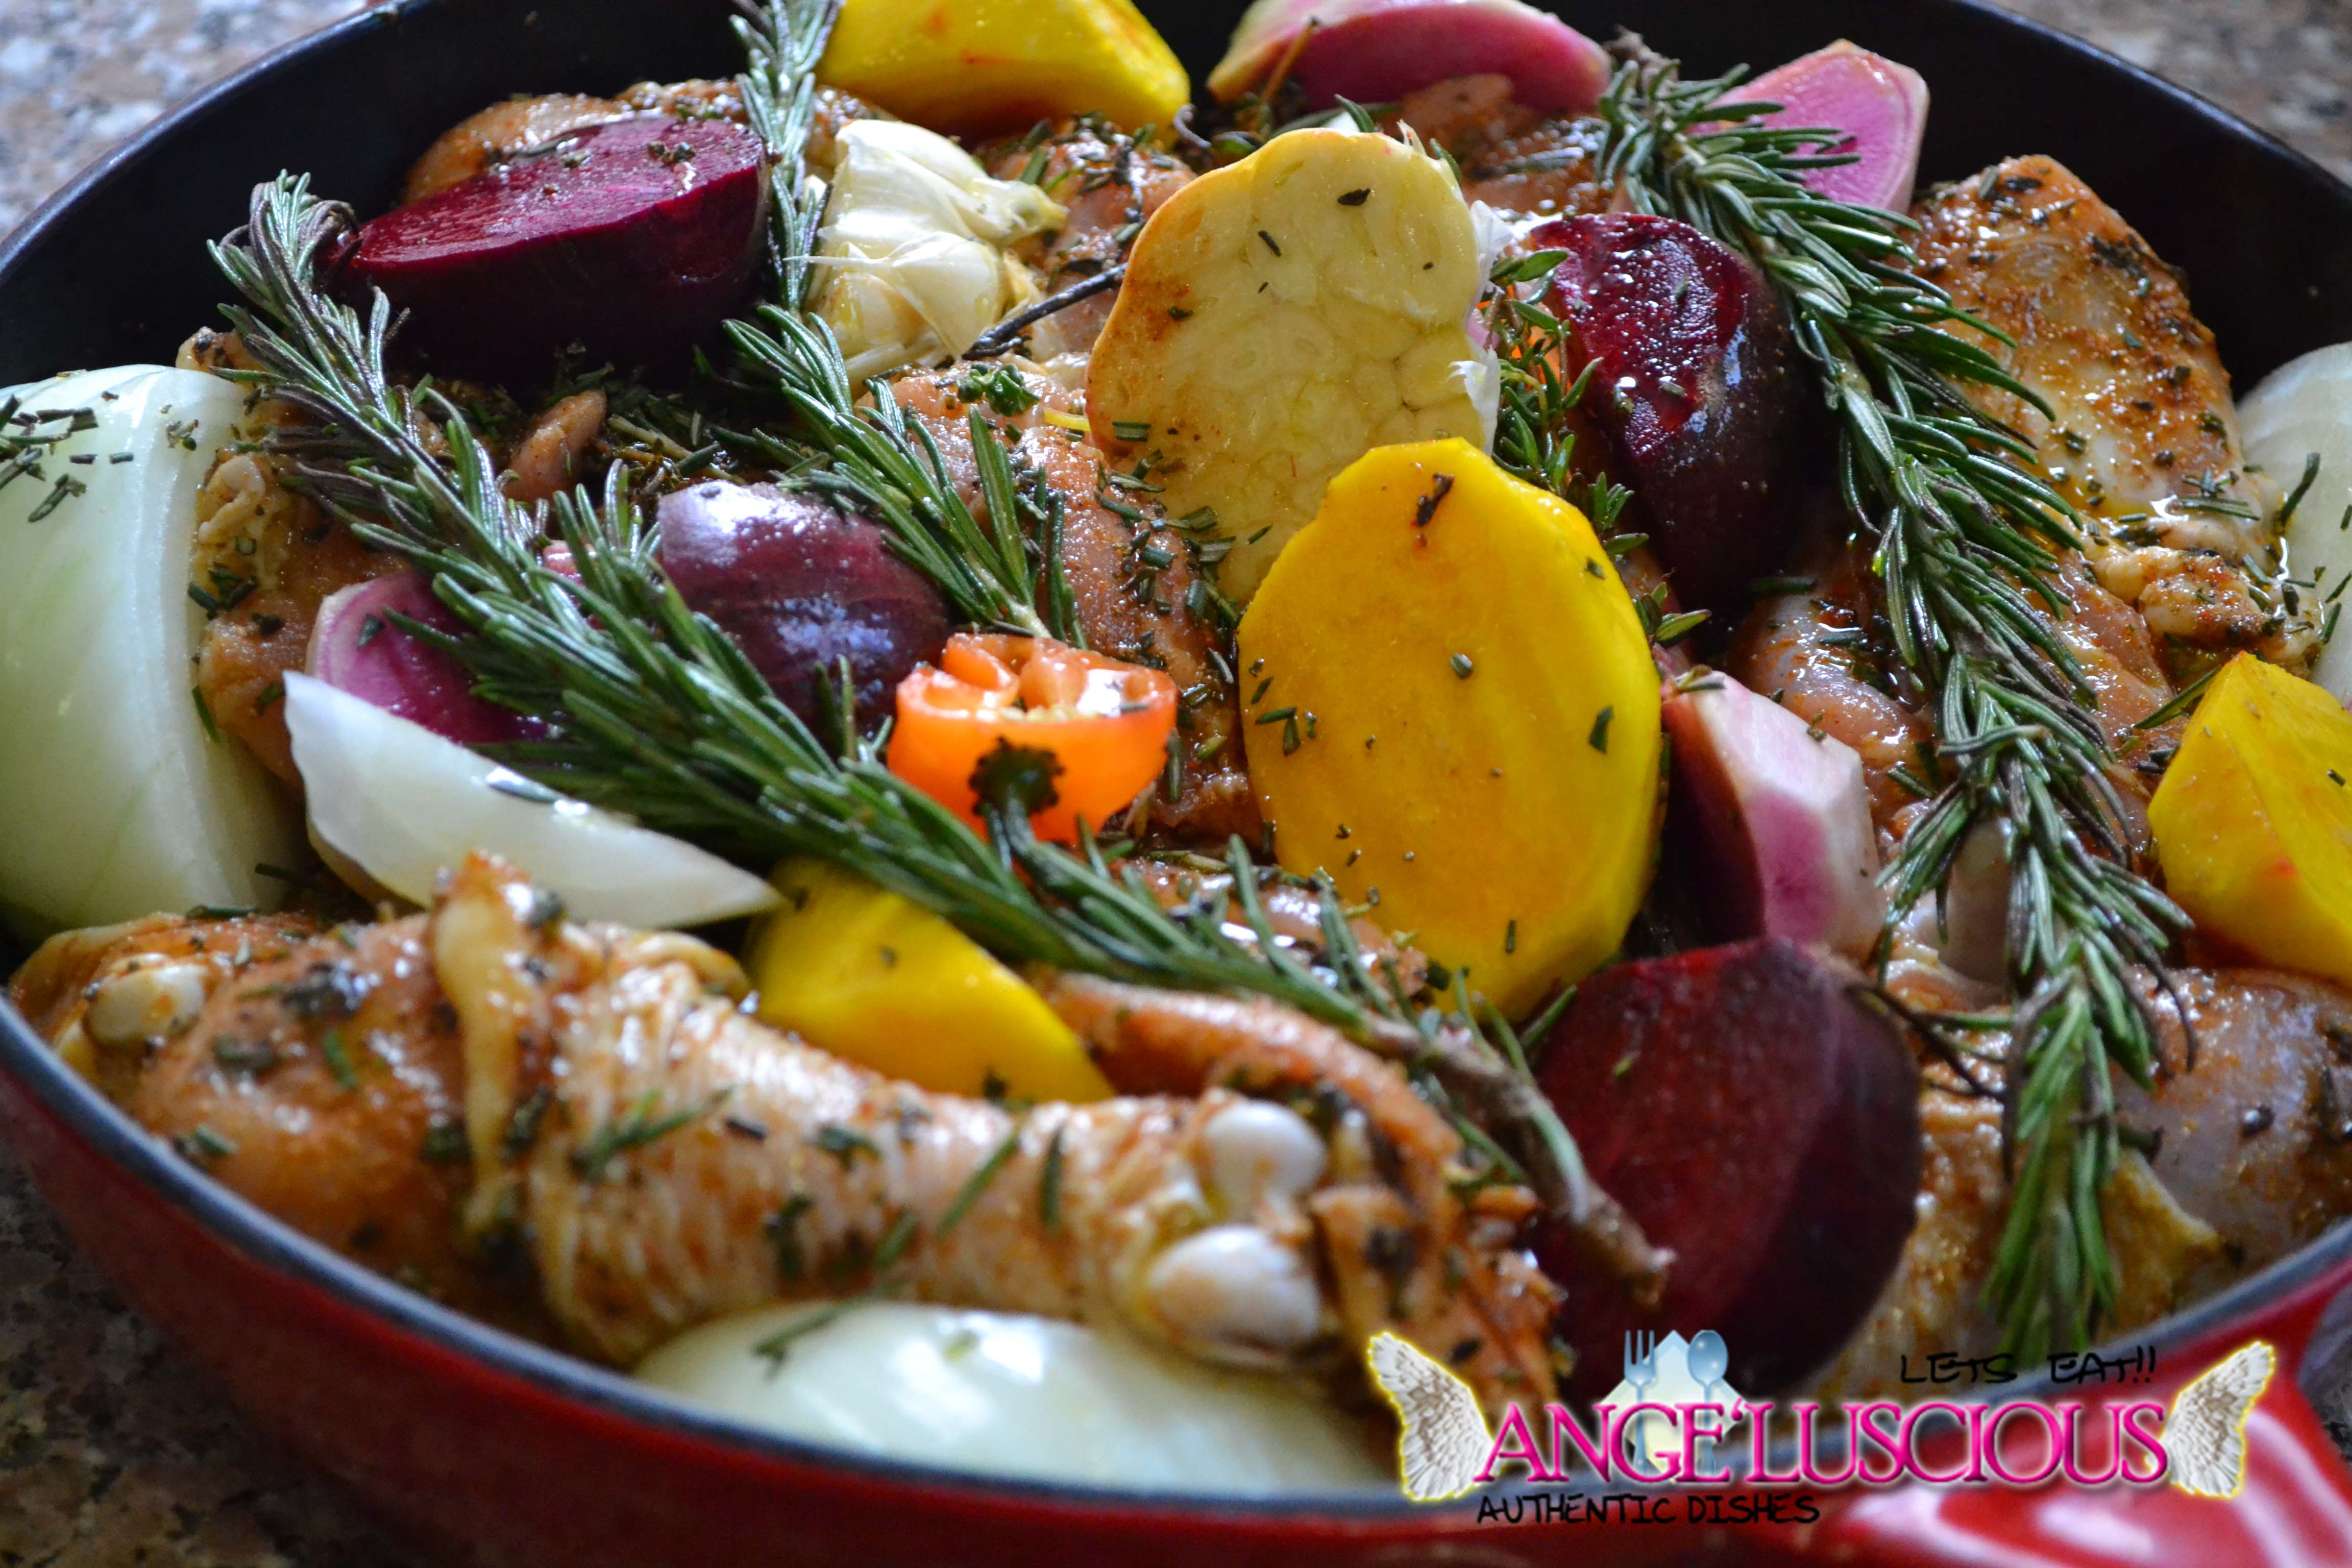 roasted chicken with golden beets, purple beets and watermelon radishDSC_9900